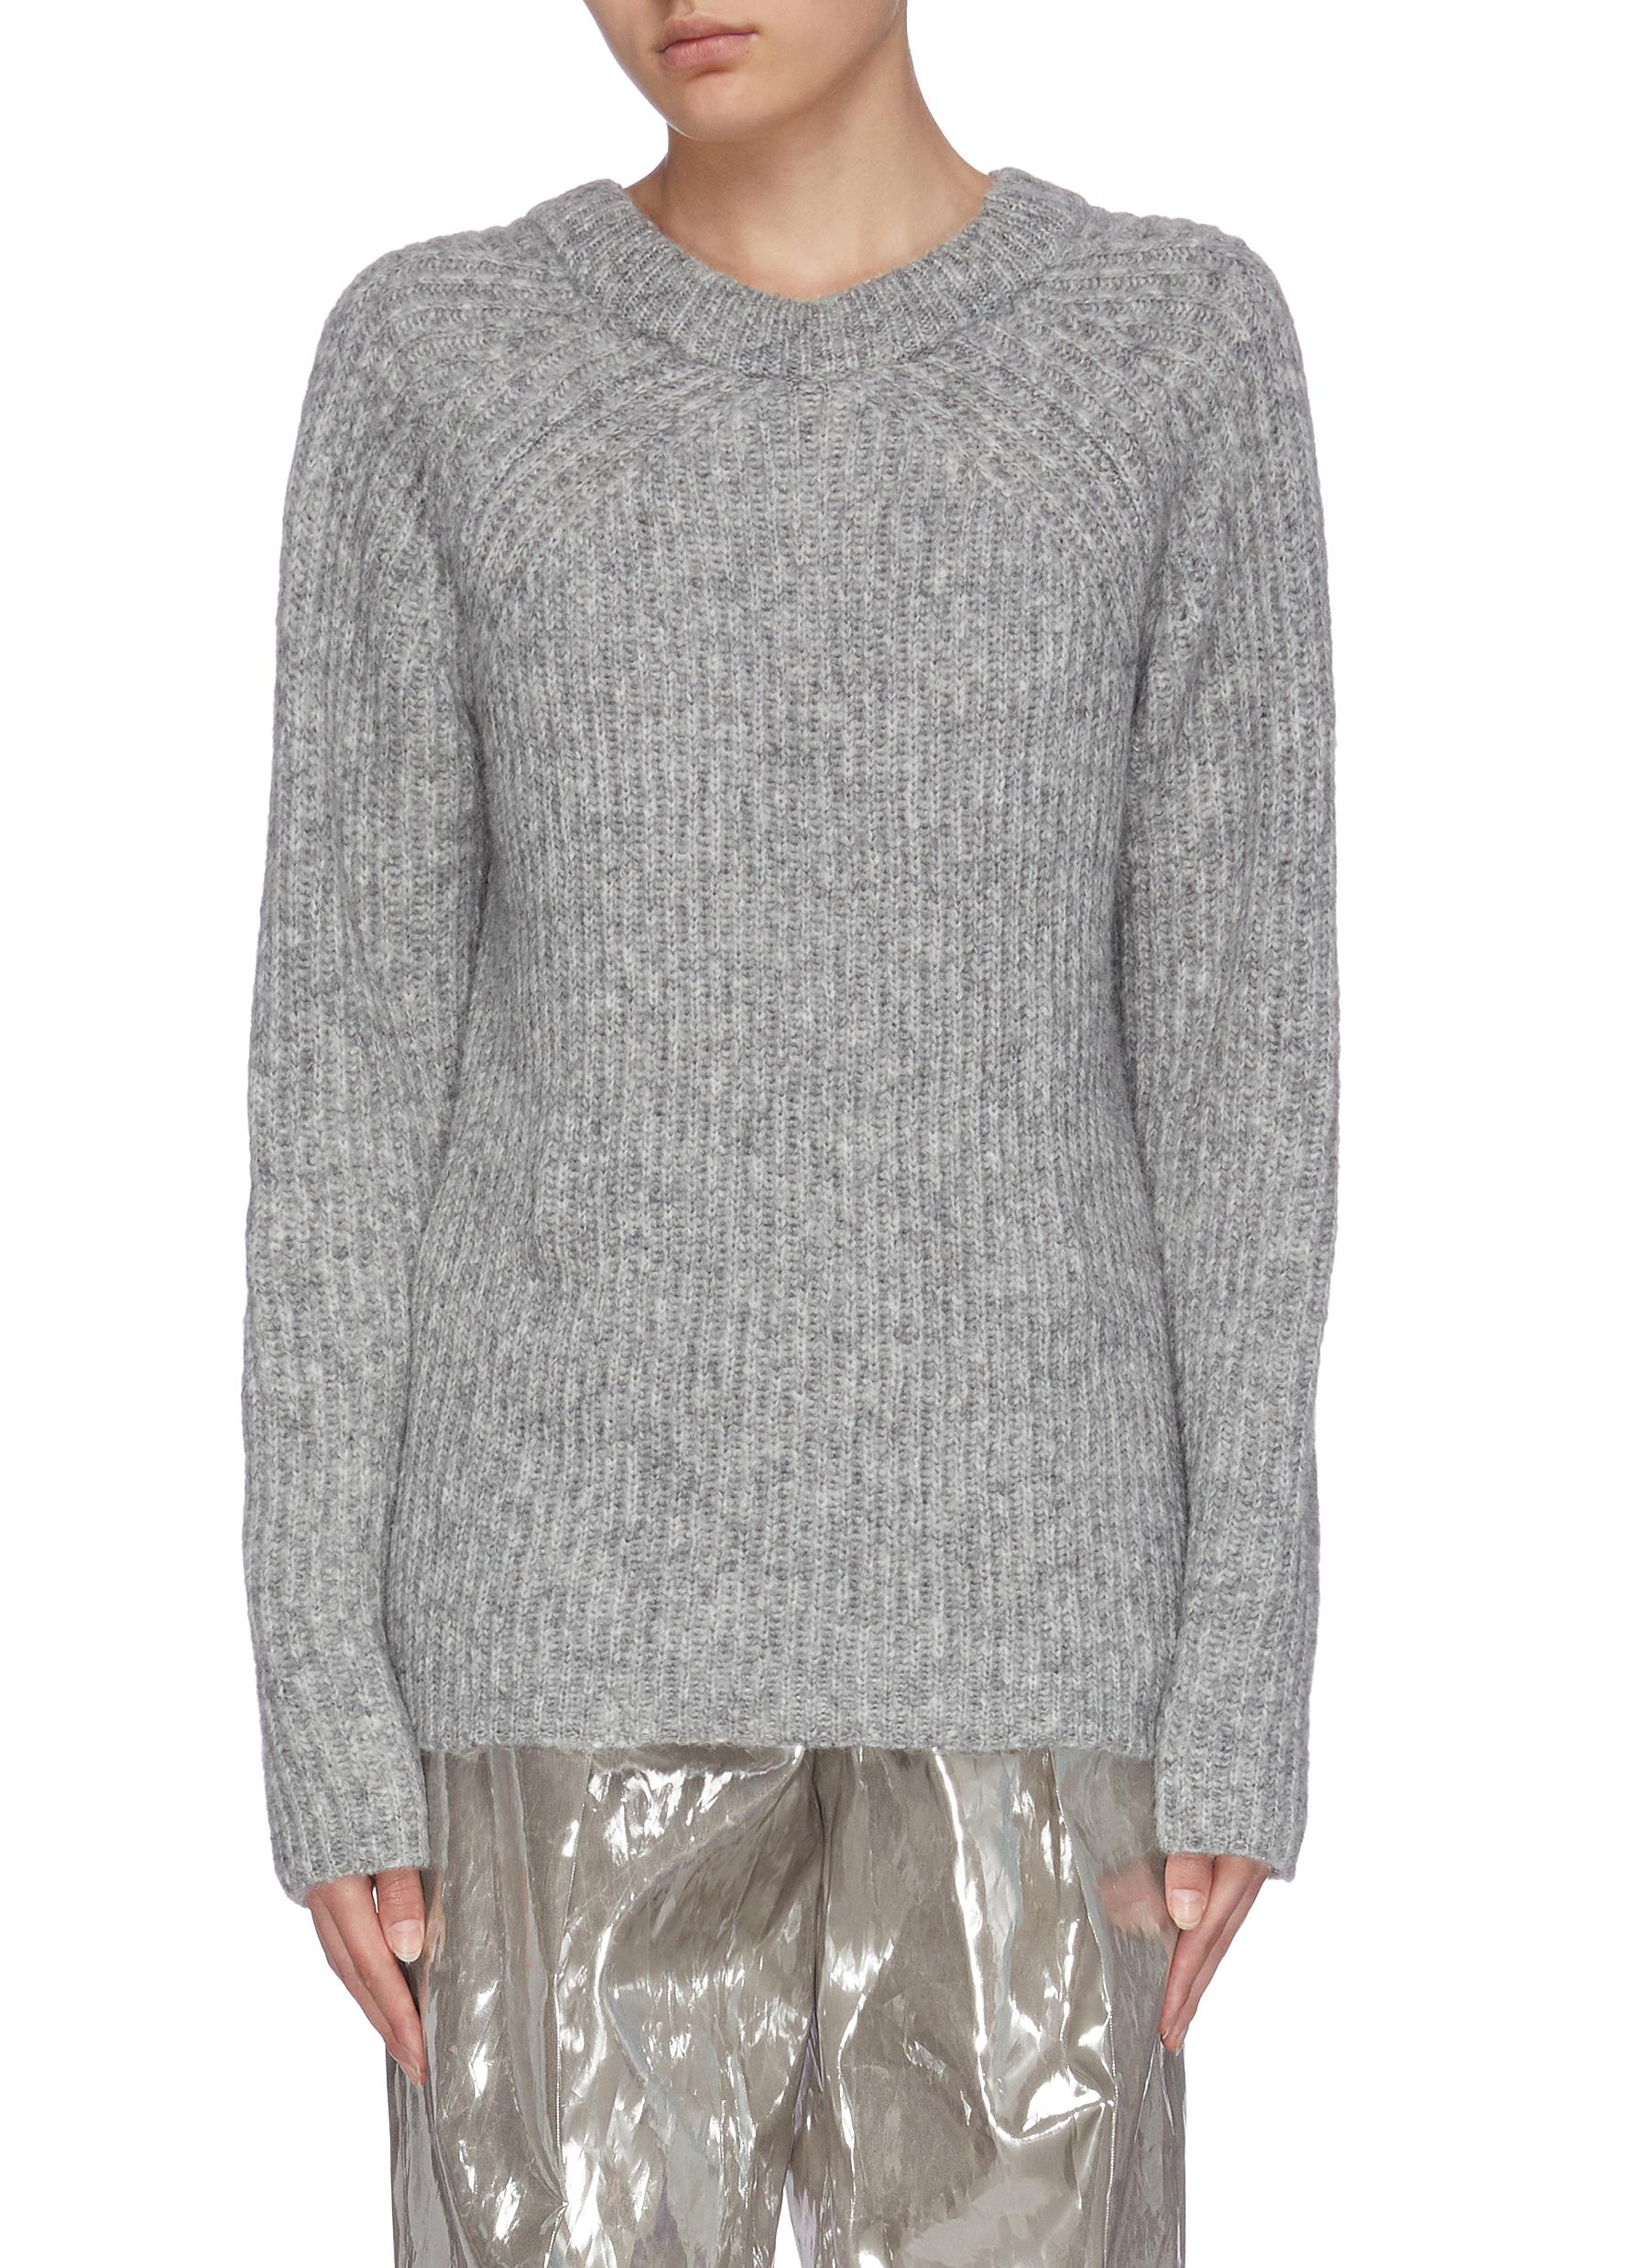 Buy Helmut Lang Knitwear 'Ghost' marl knit sweater